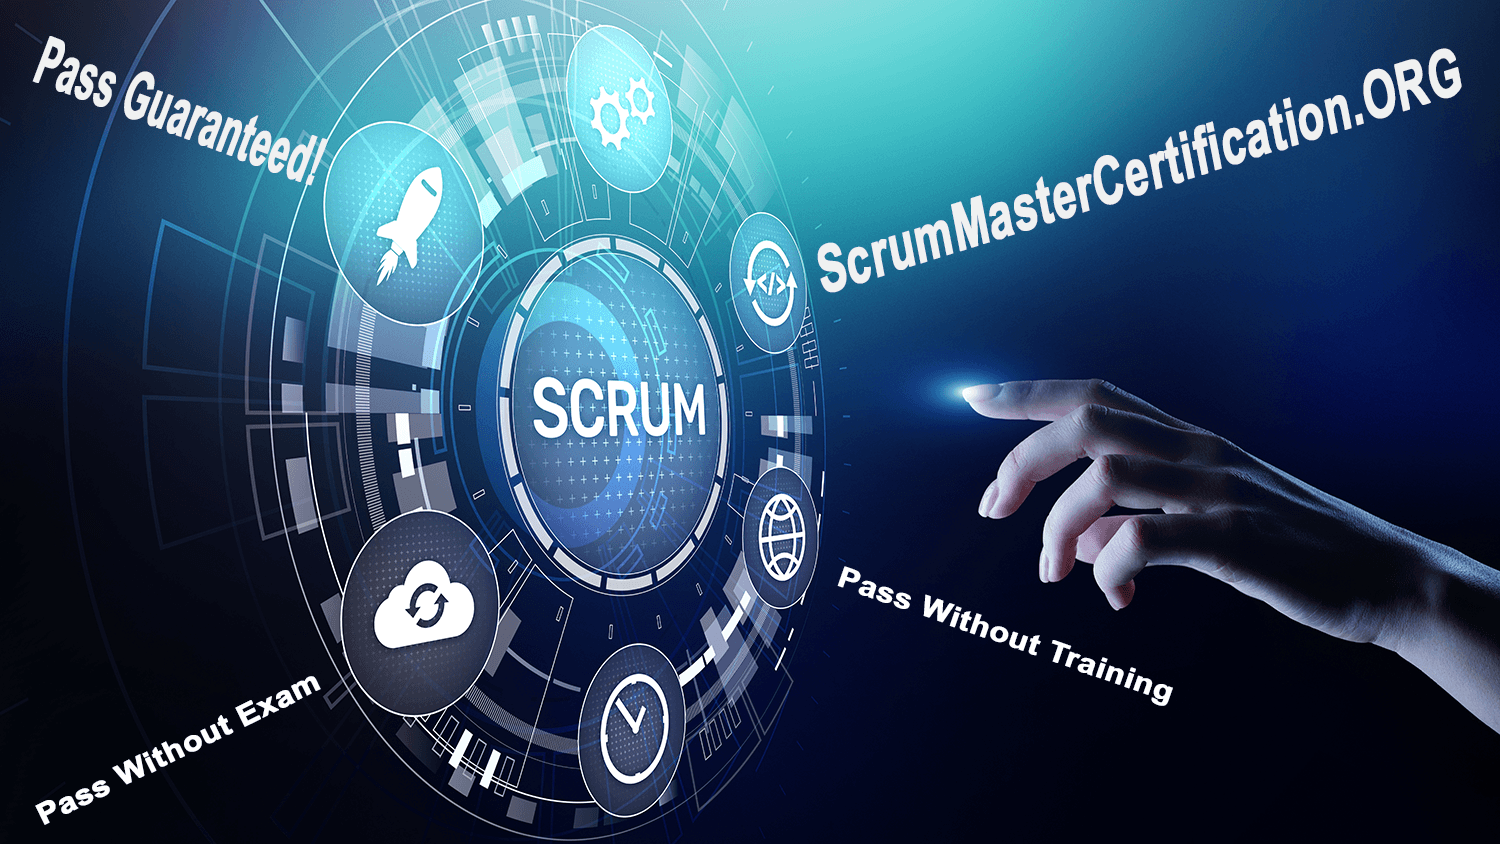 Scrum Master Certification Exam Cost Salary Online Test